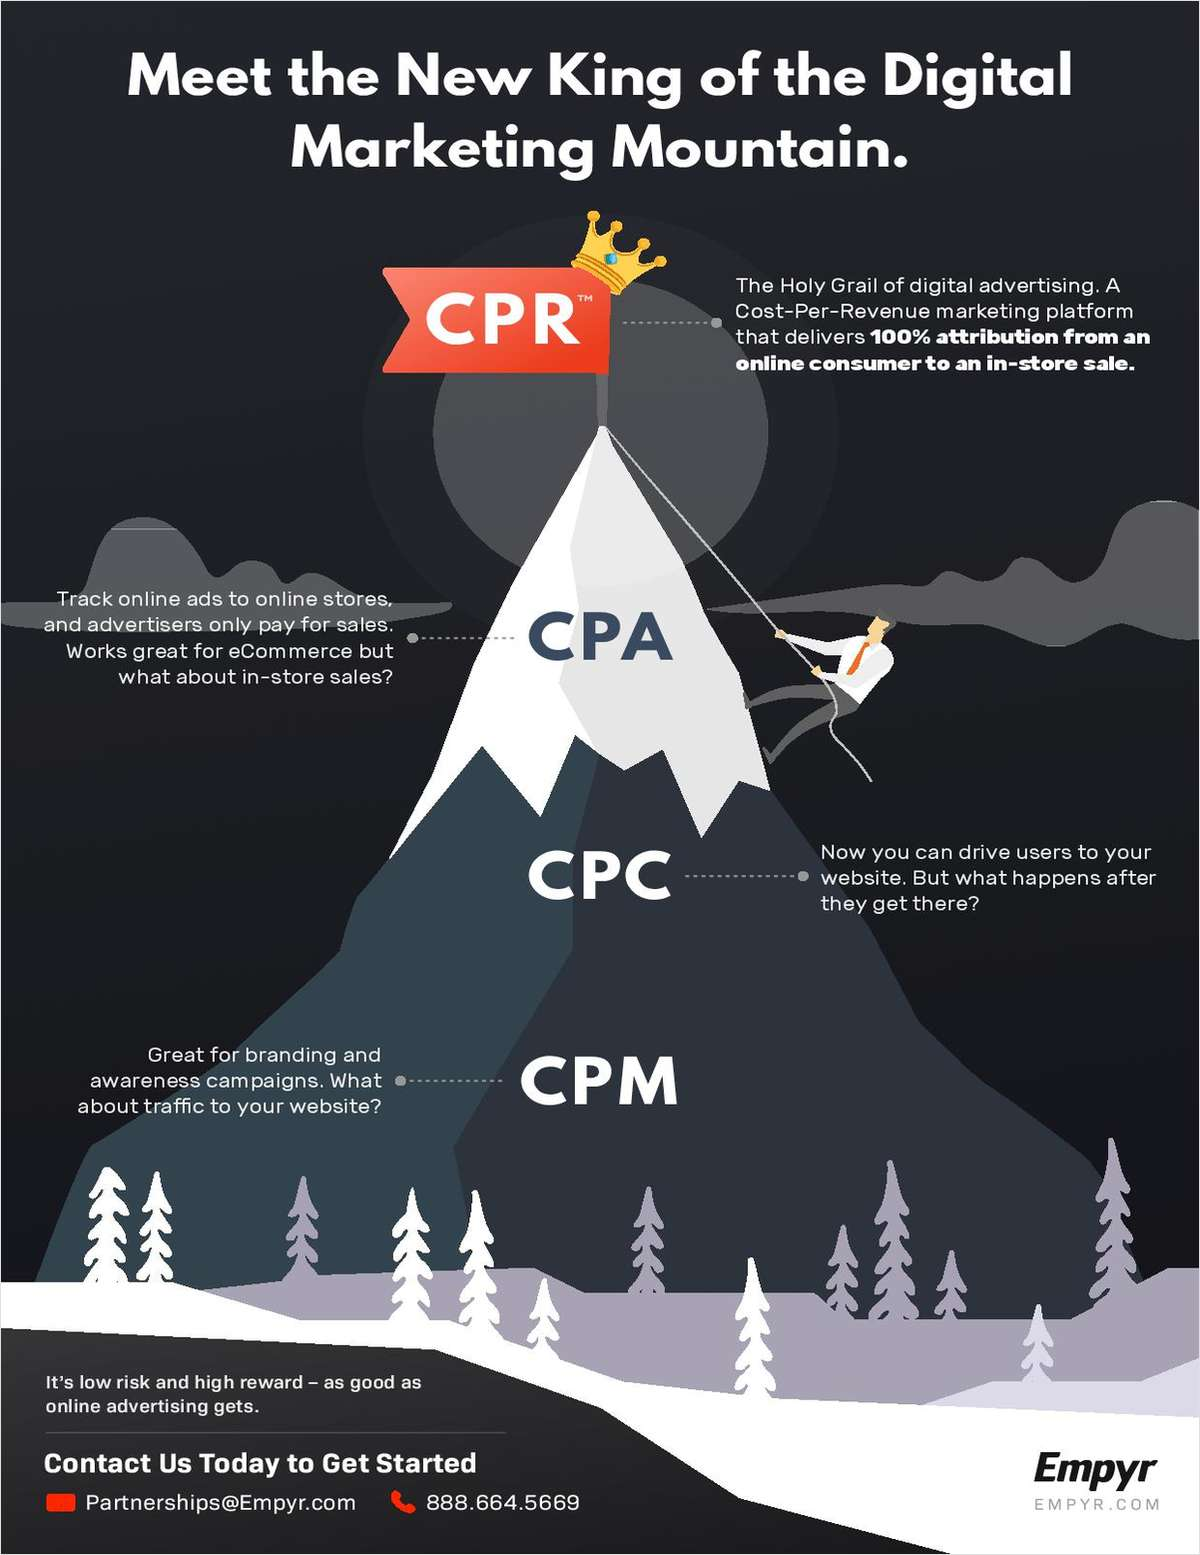 Meet the New King of the Digital Marketing Mountain